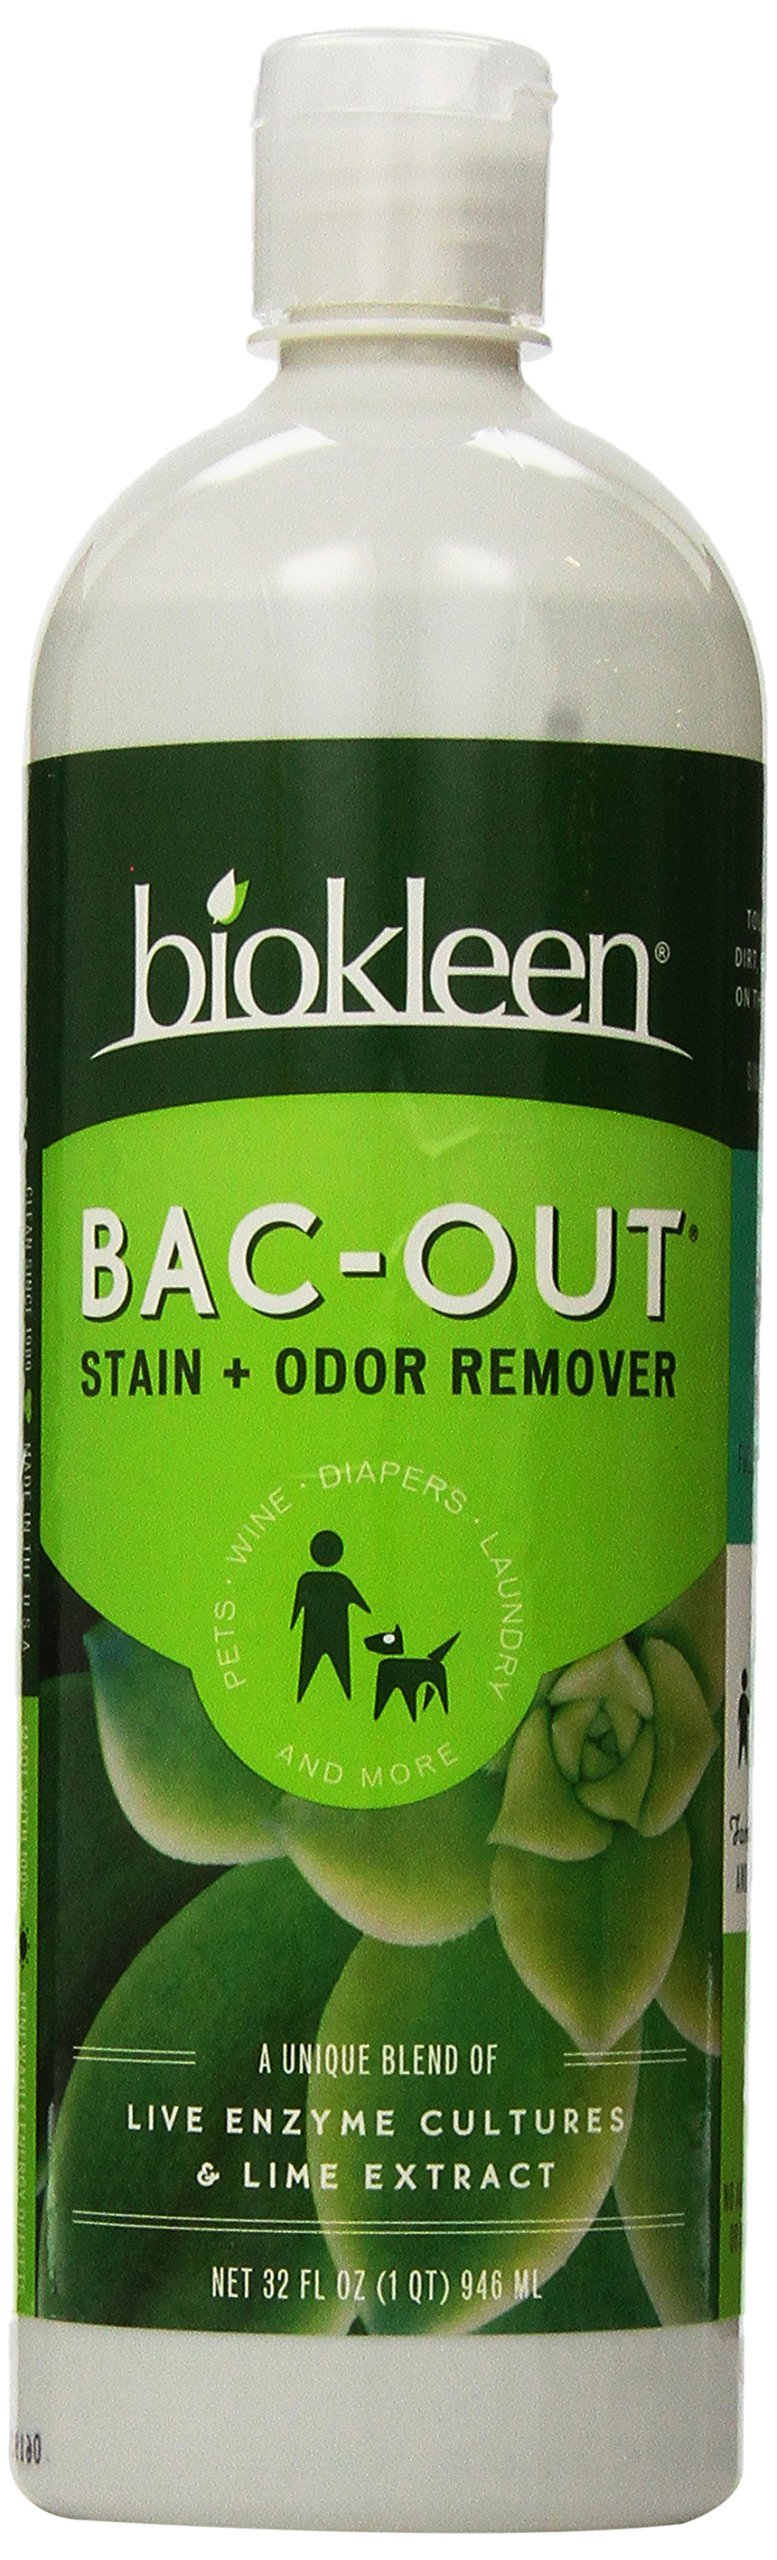 Biokleen Bac-Out Stain+Odor Remover, 32 oz